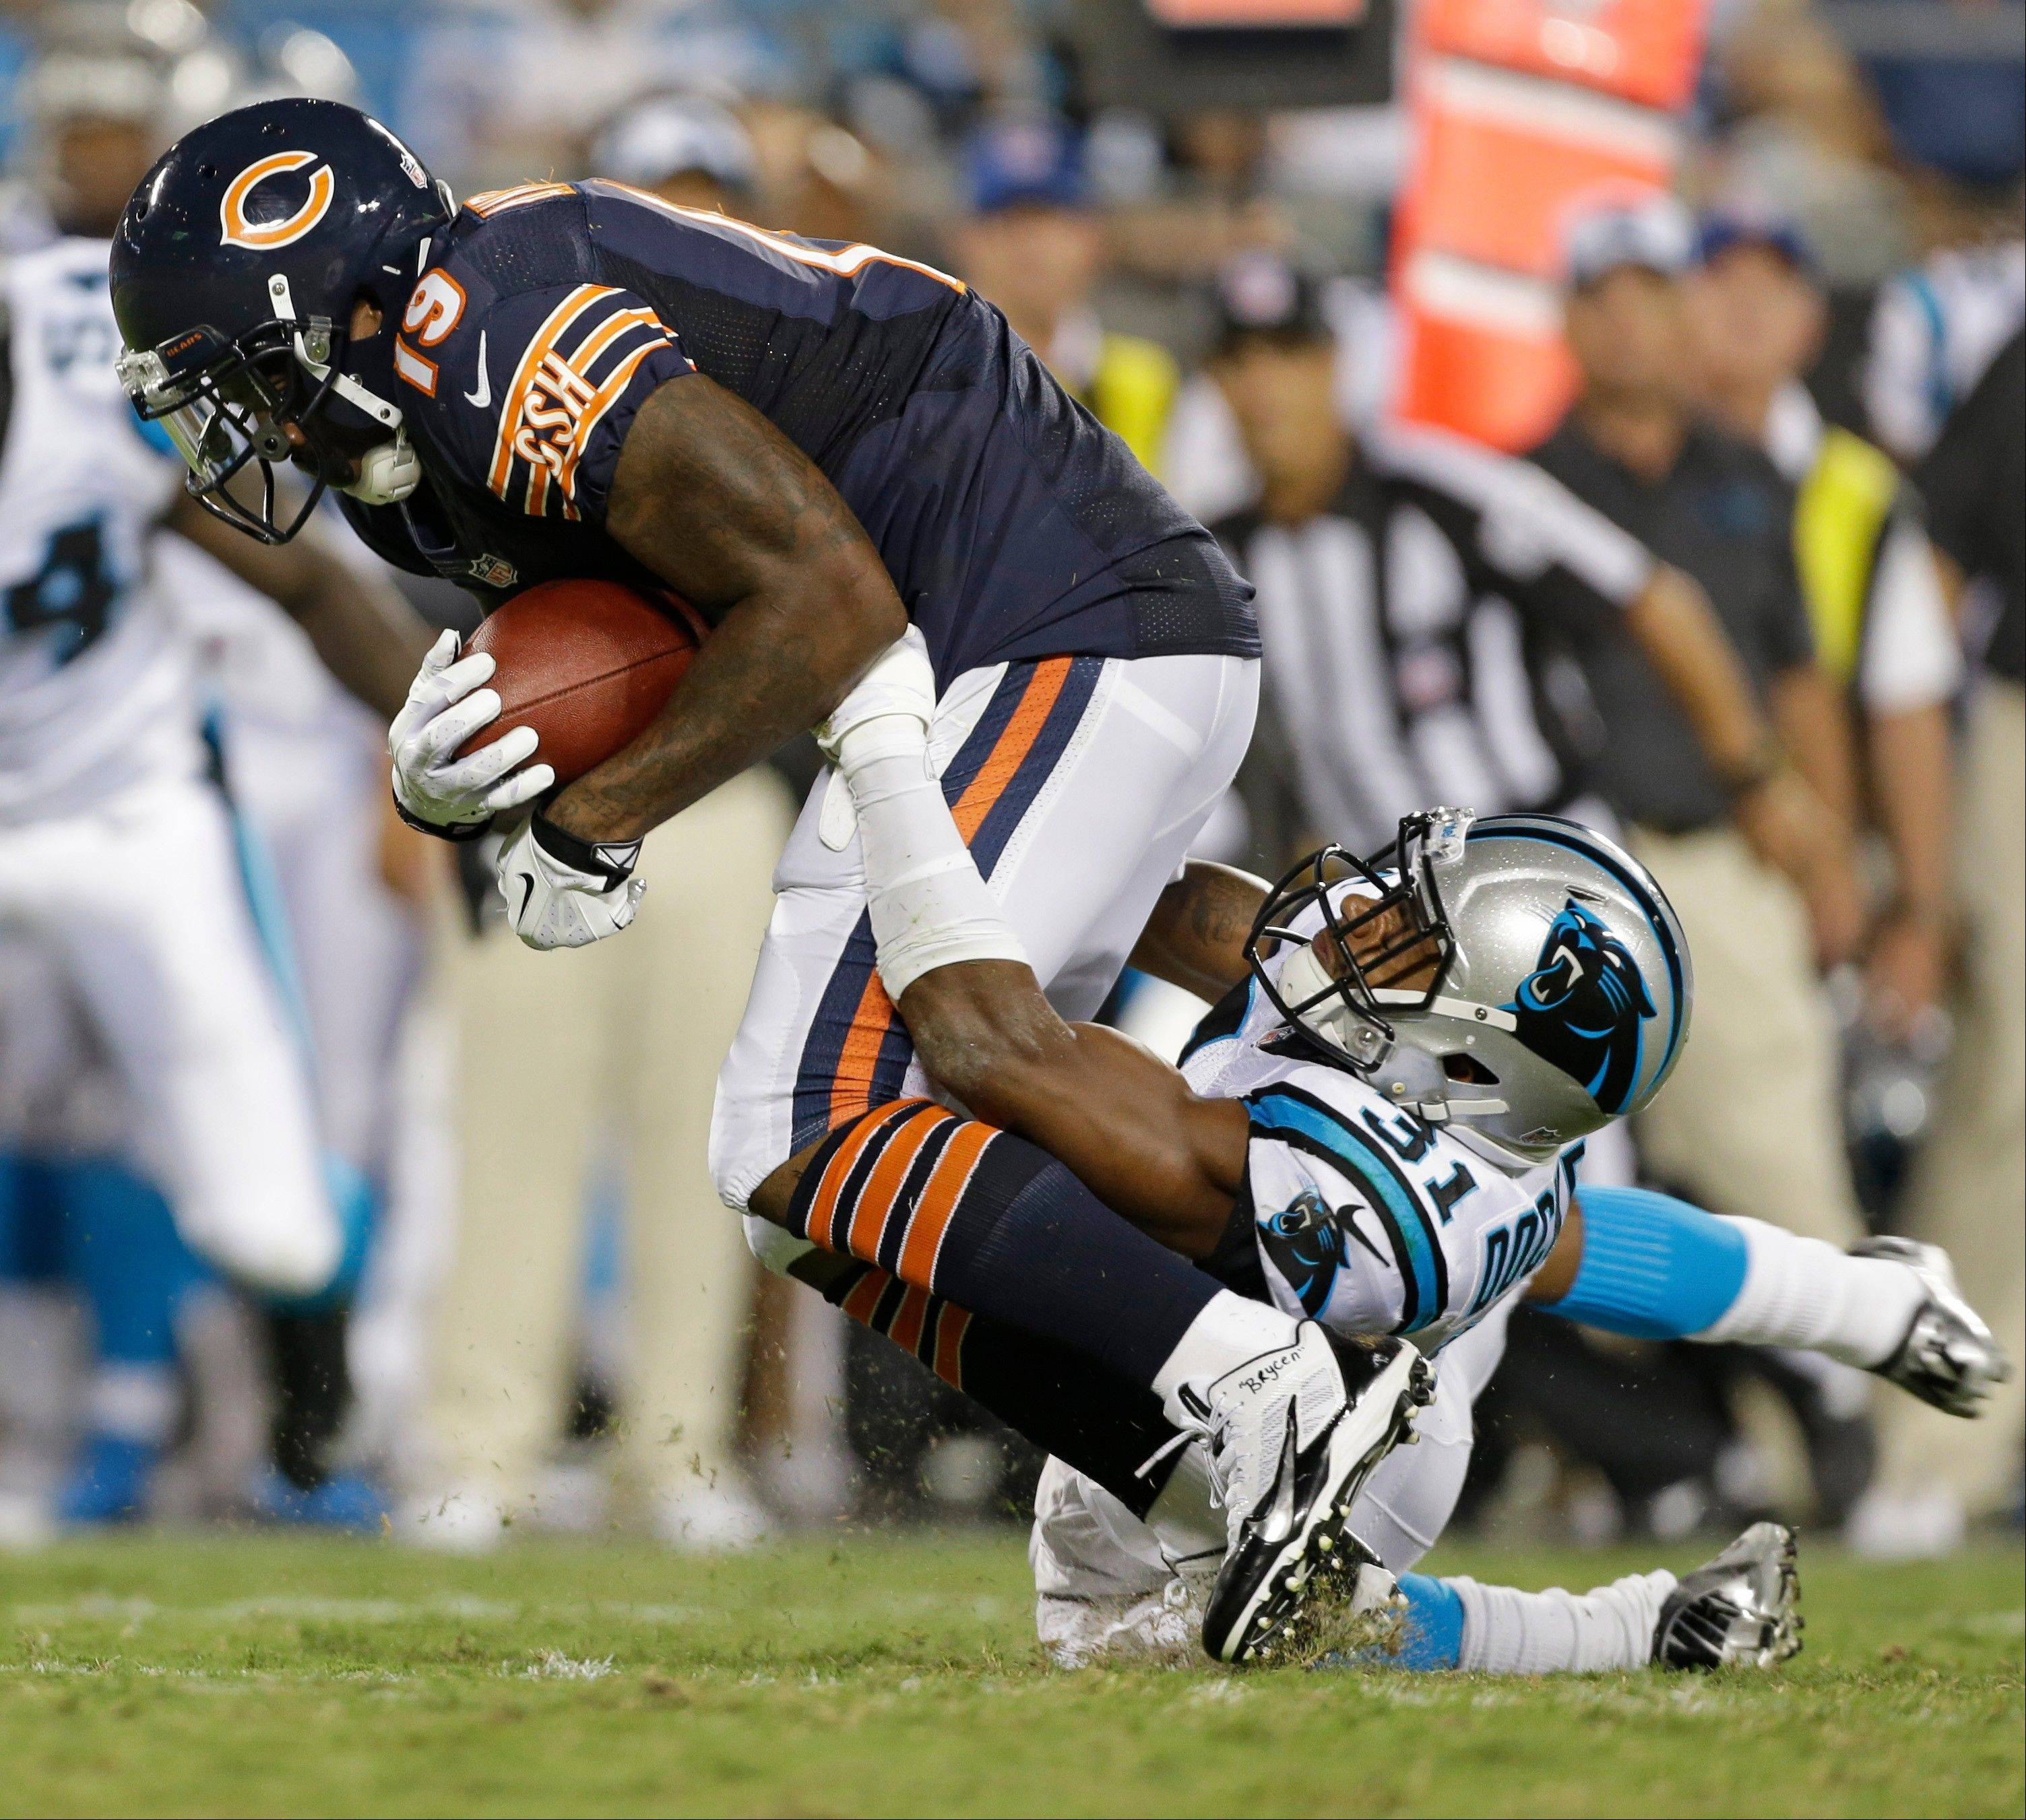 Chicago Bears' Joe Anderson (19) is pulled down by Carolina Panthers' James Dockery (31) during the first half of a preseason NFL football game in Charlotte, N.C., Friday, Aug. 9, 2013.